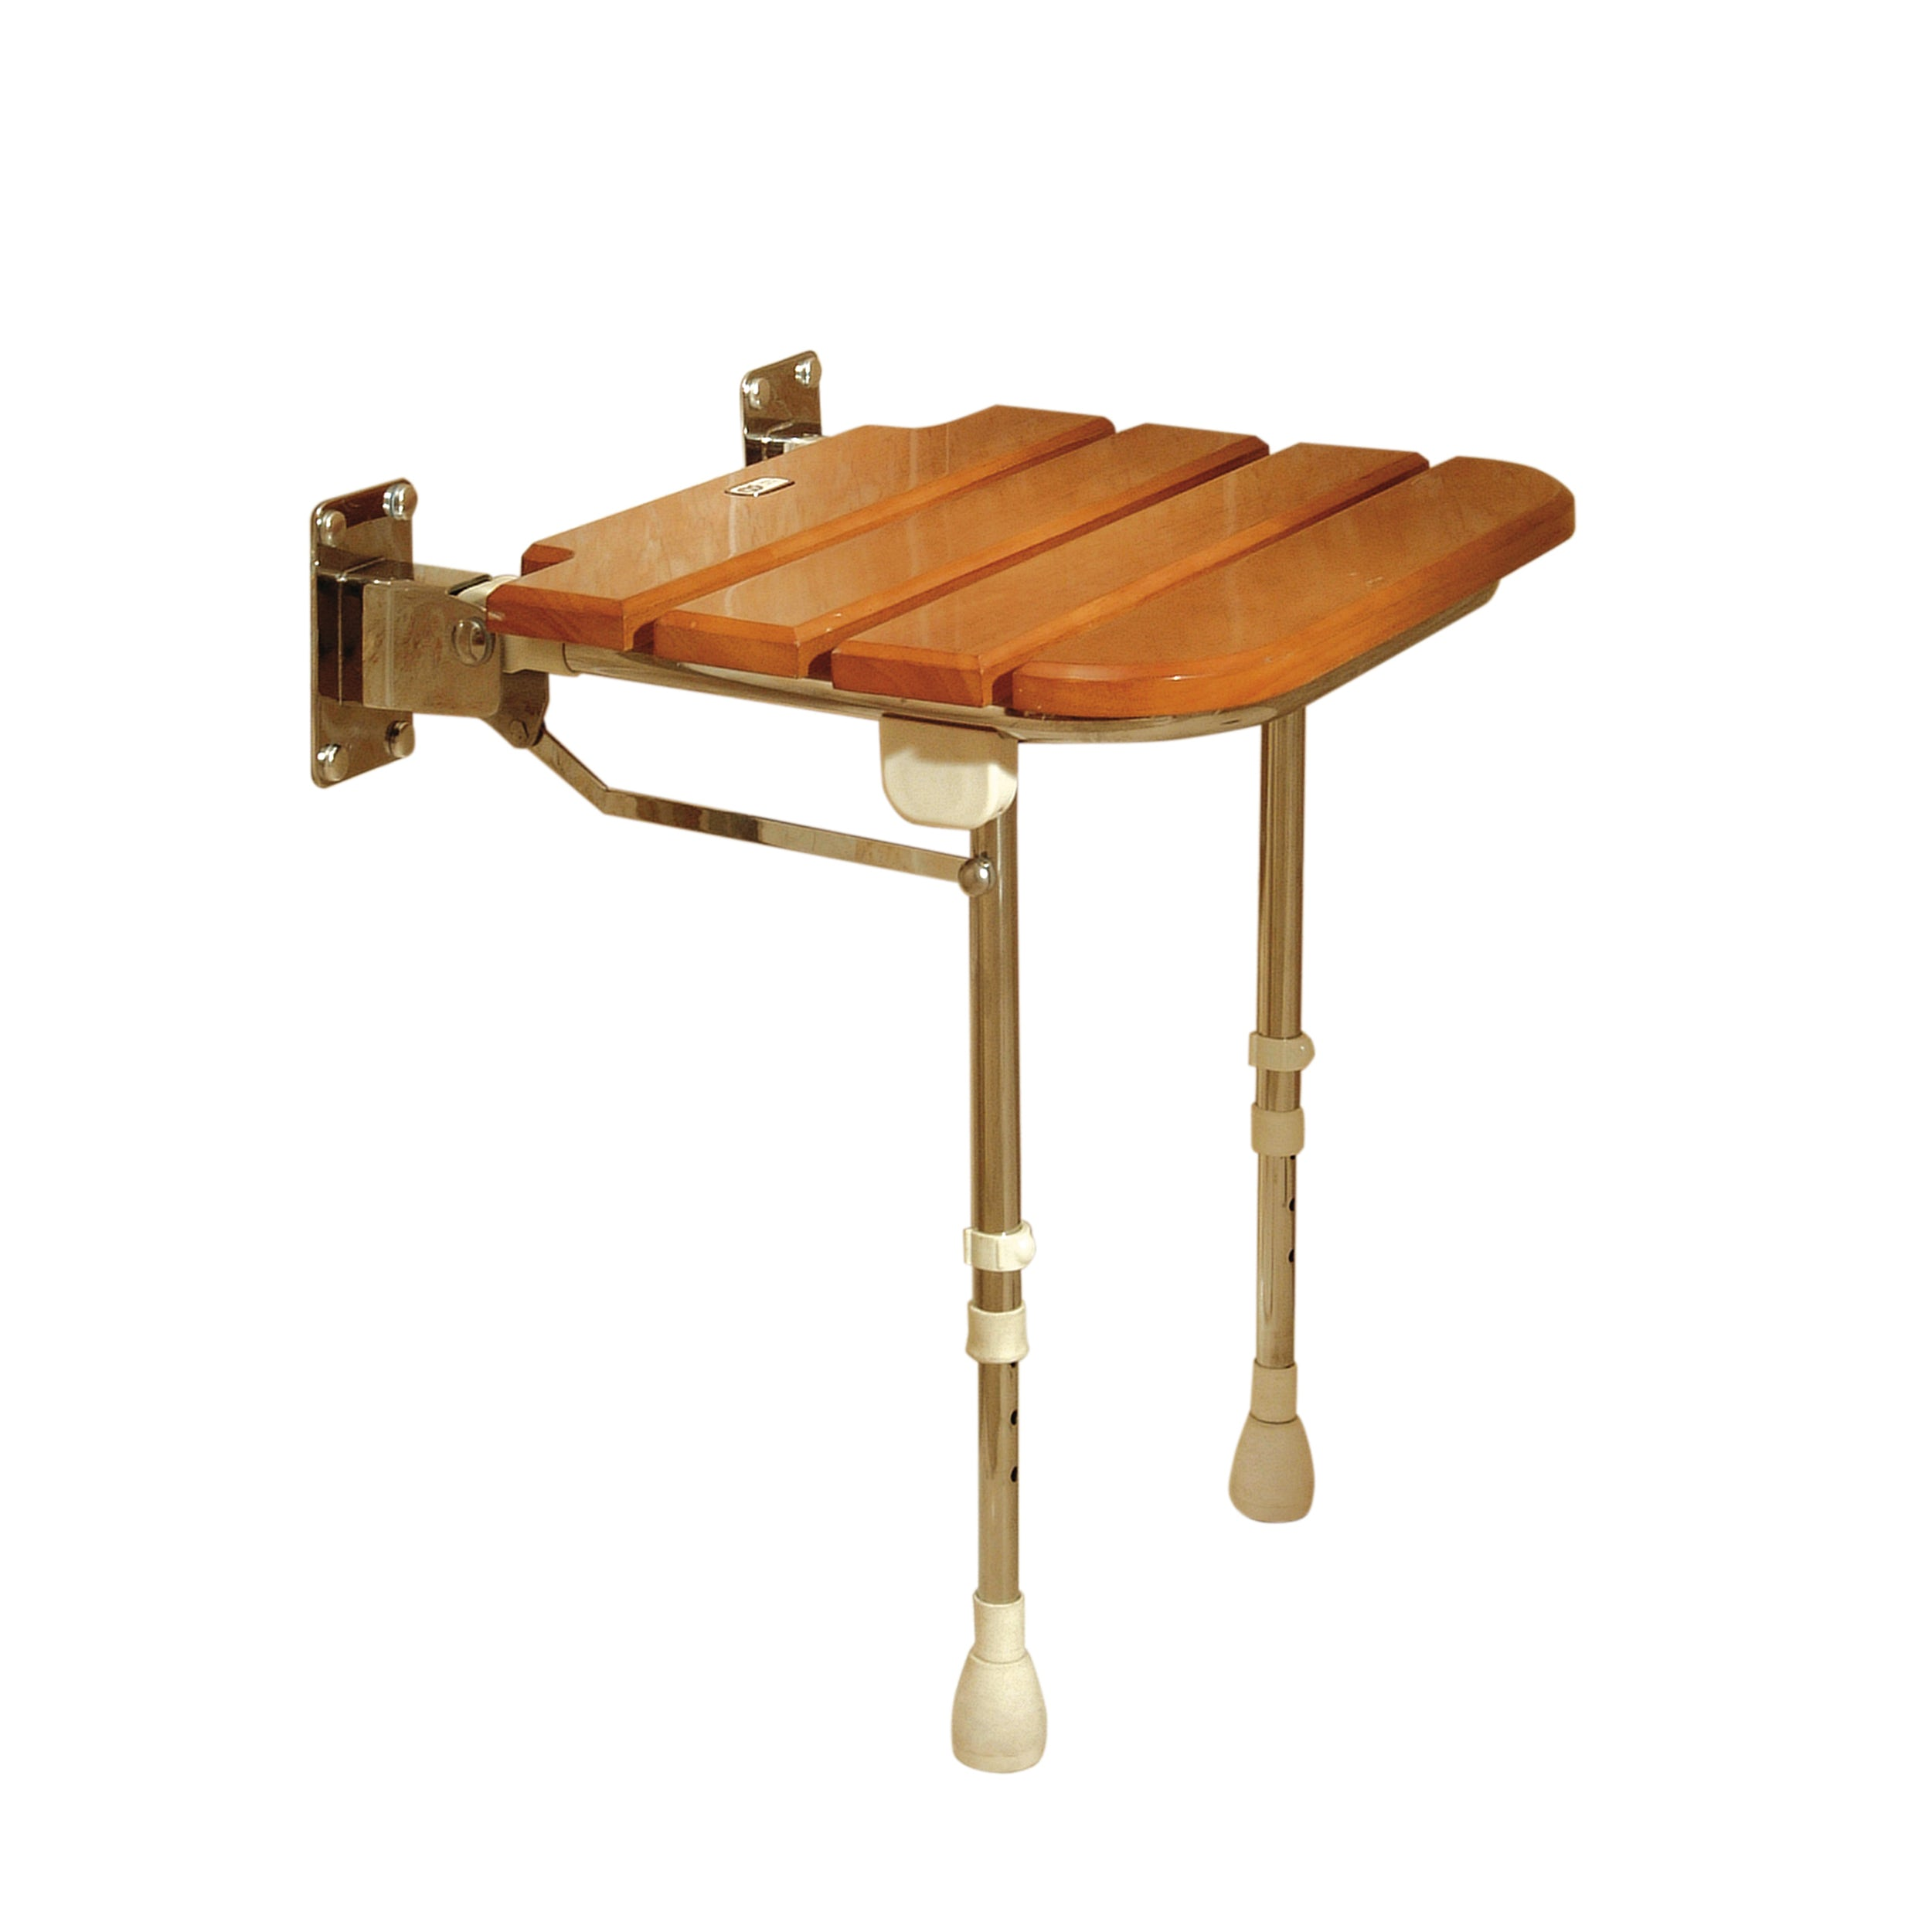 AKW Wooden folding shower seat